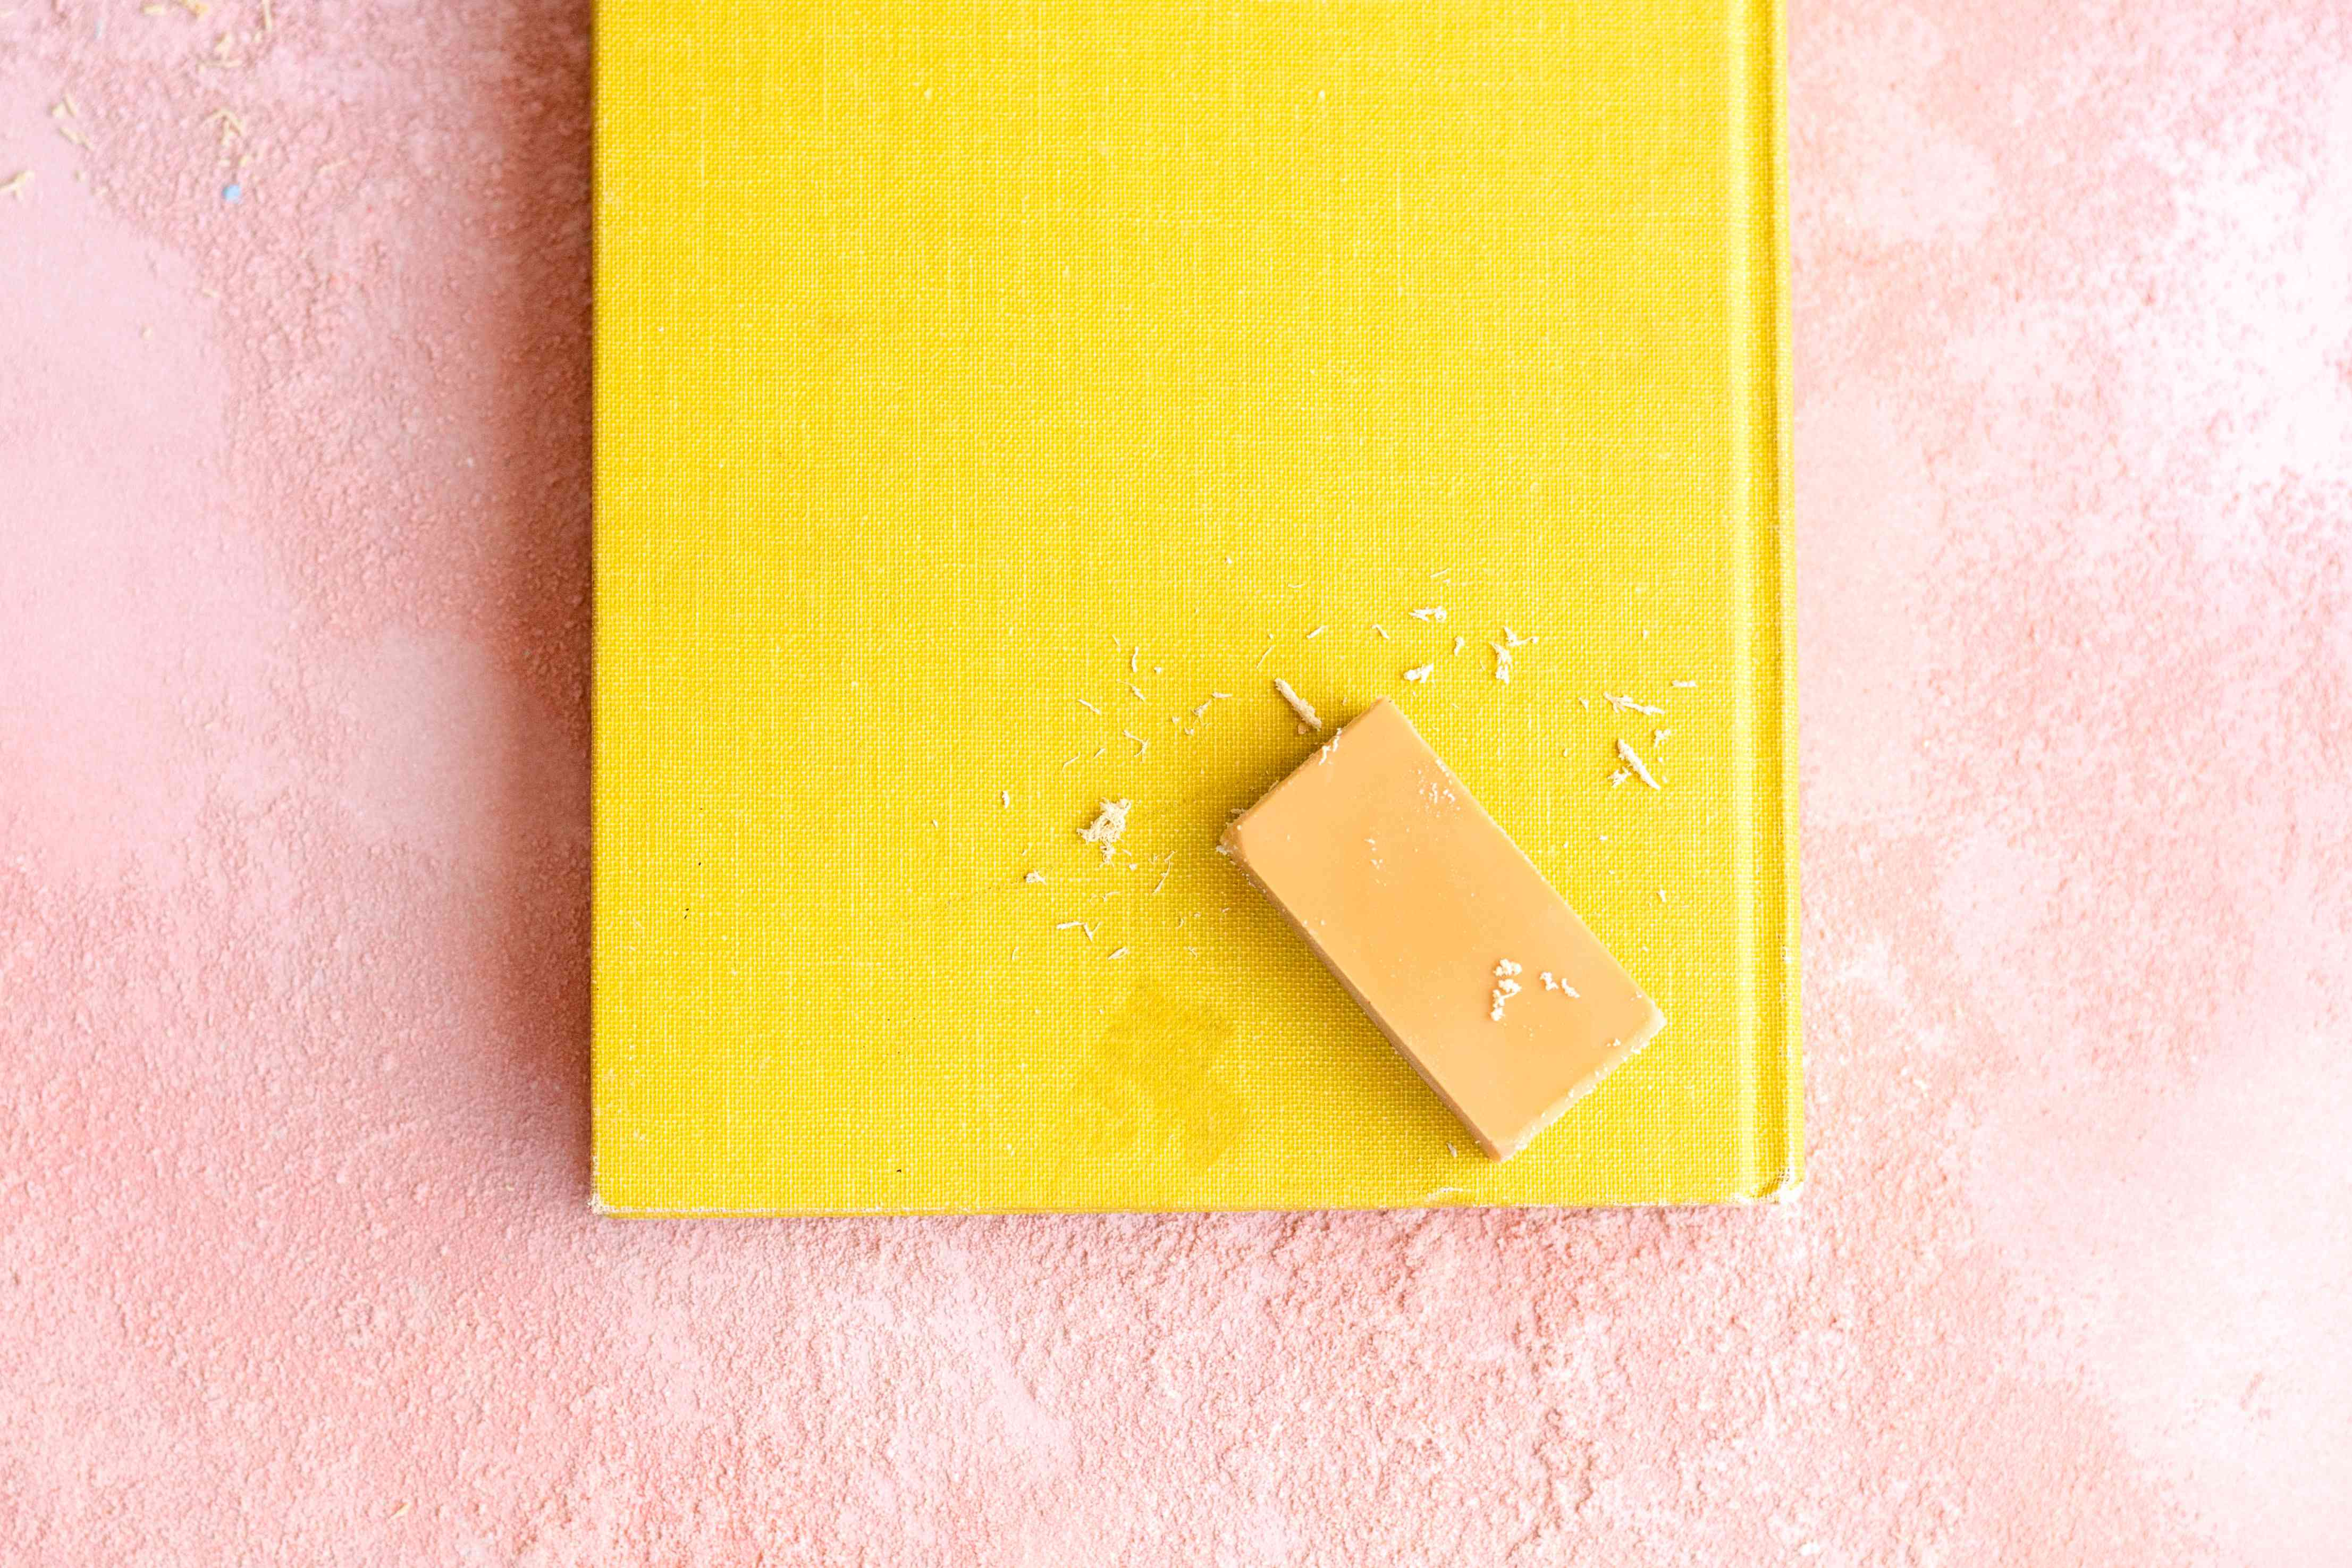 using an eraser to remove smudges from books